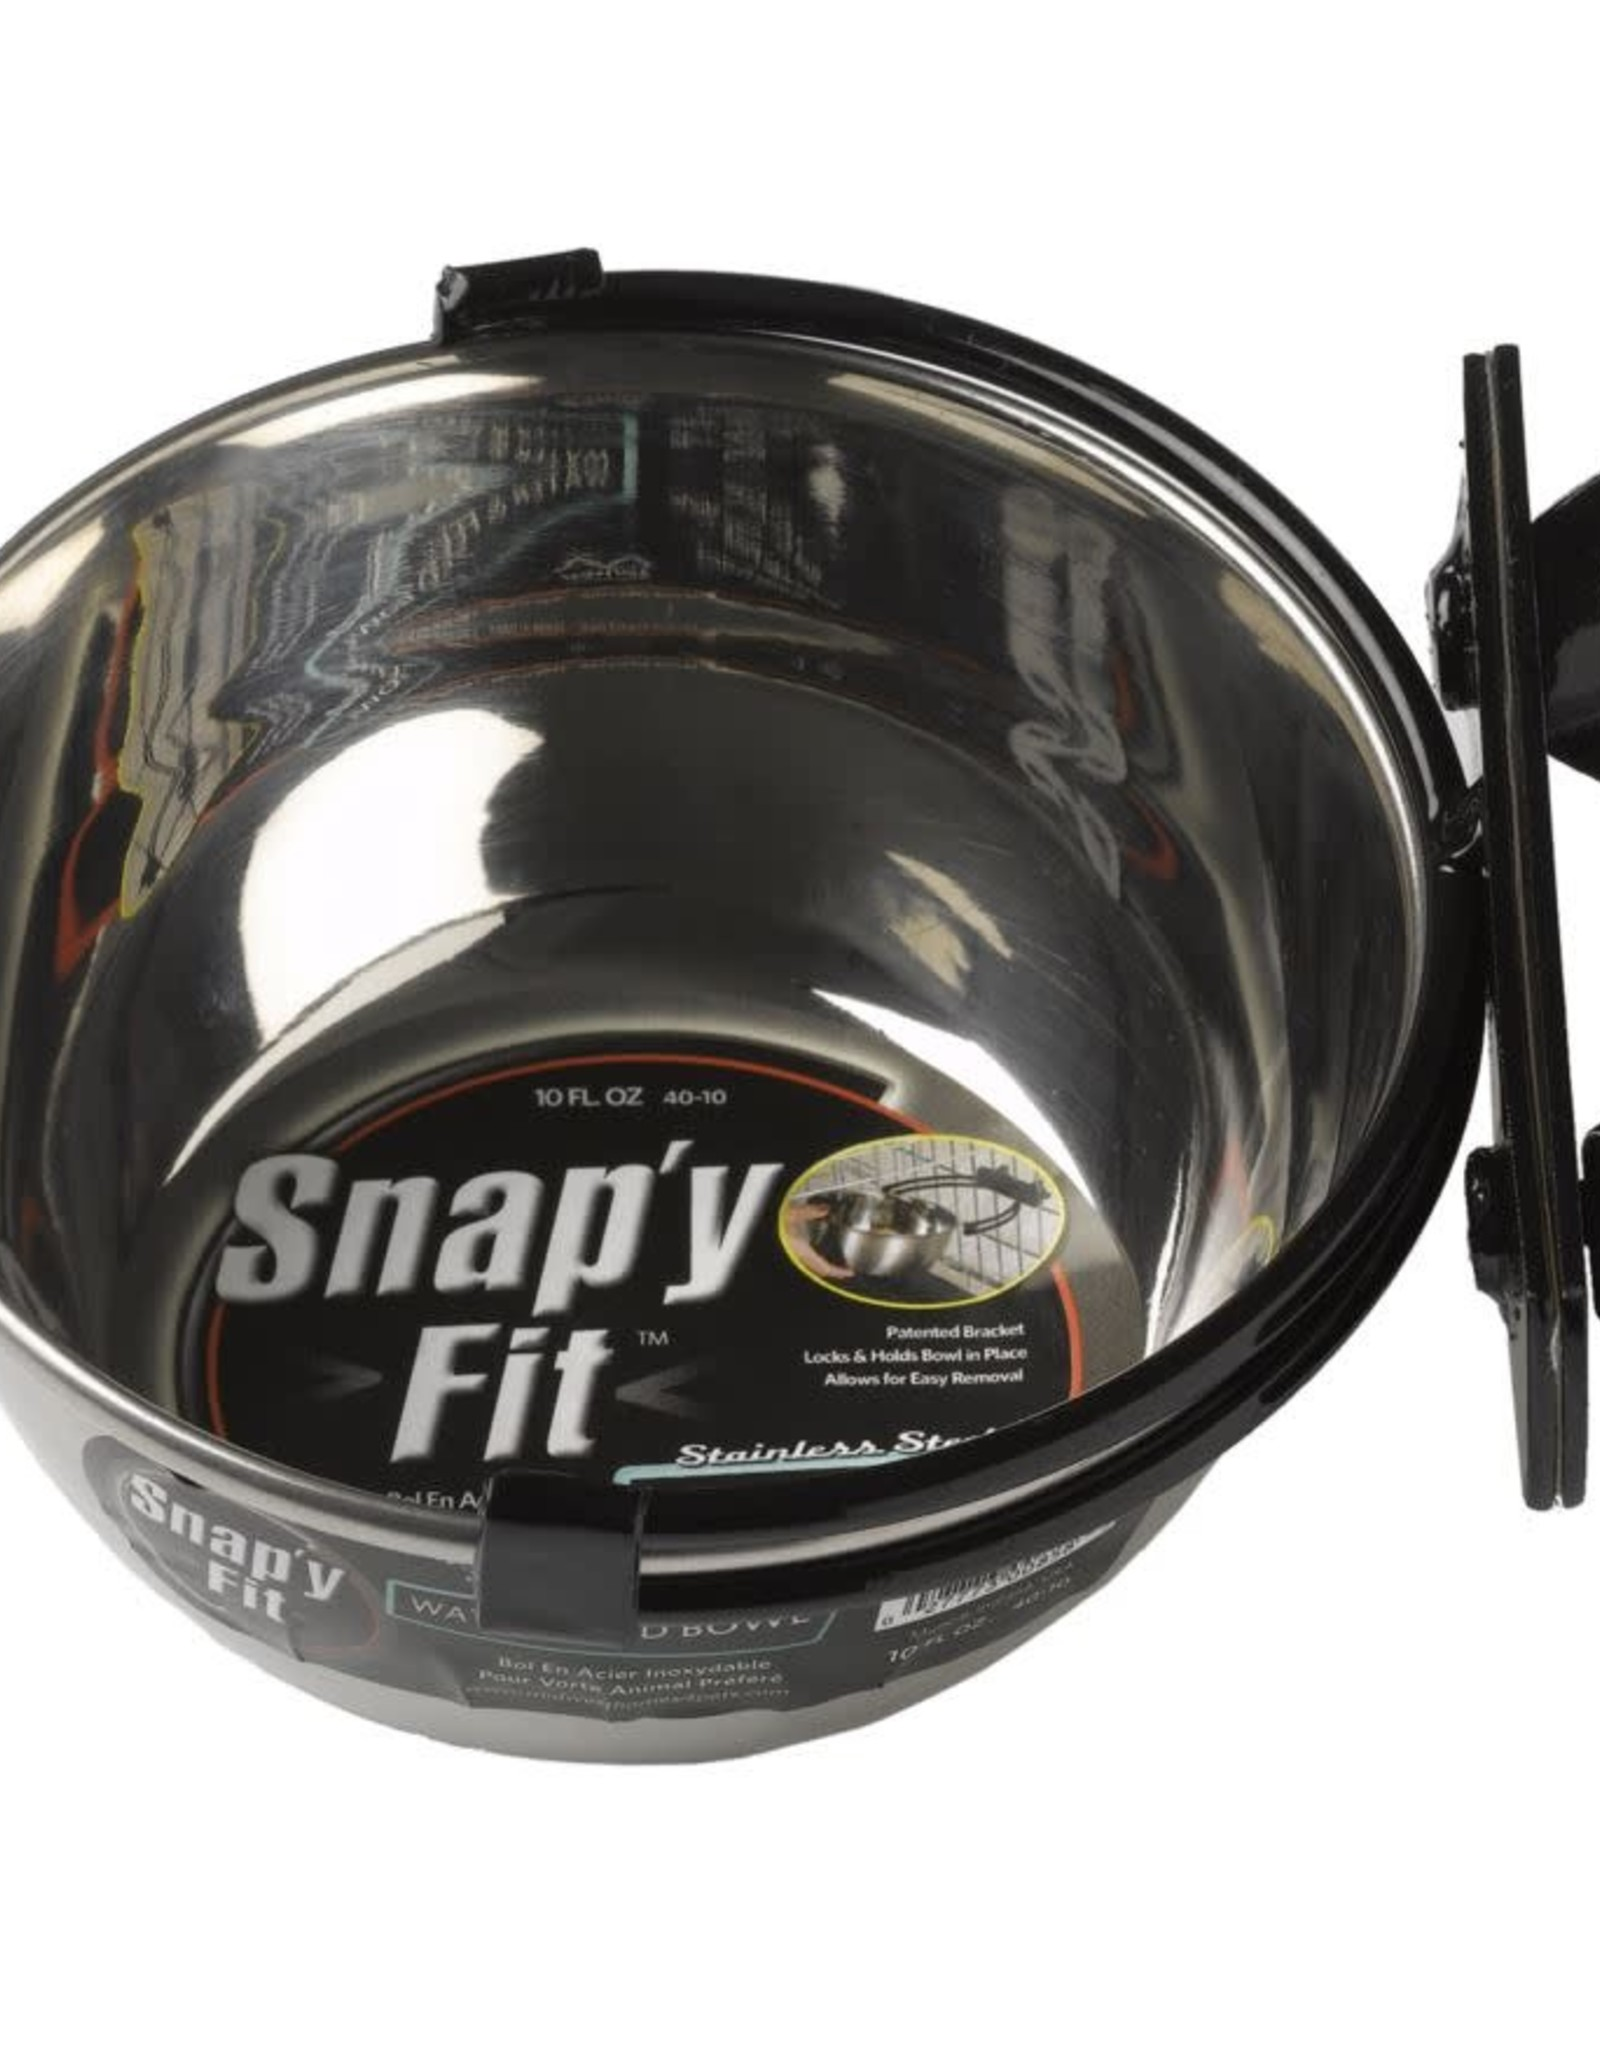 MidWest Homes for Pets Midwest Snap'y Fit Water & Food Bowl